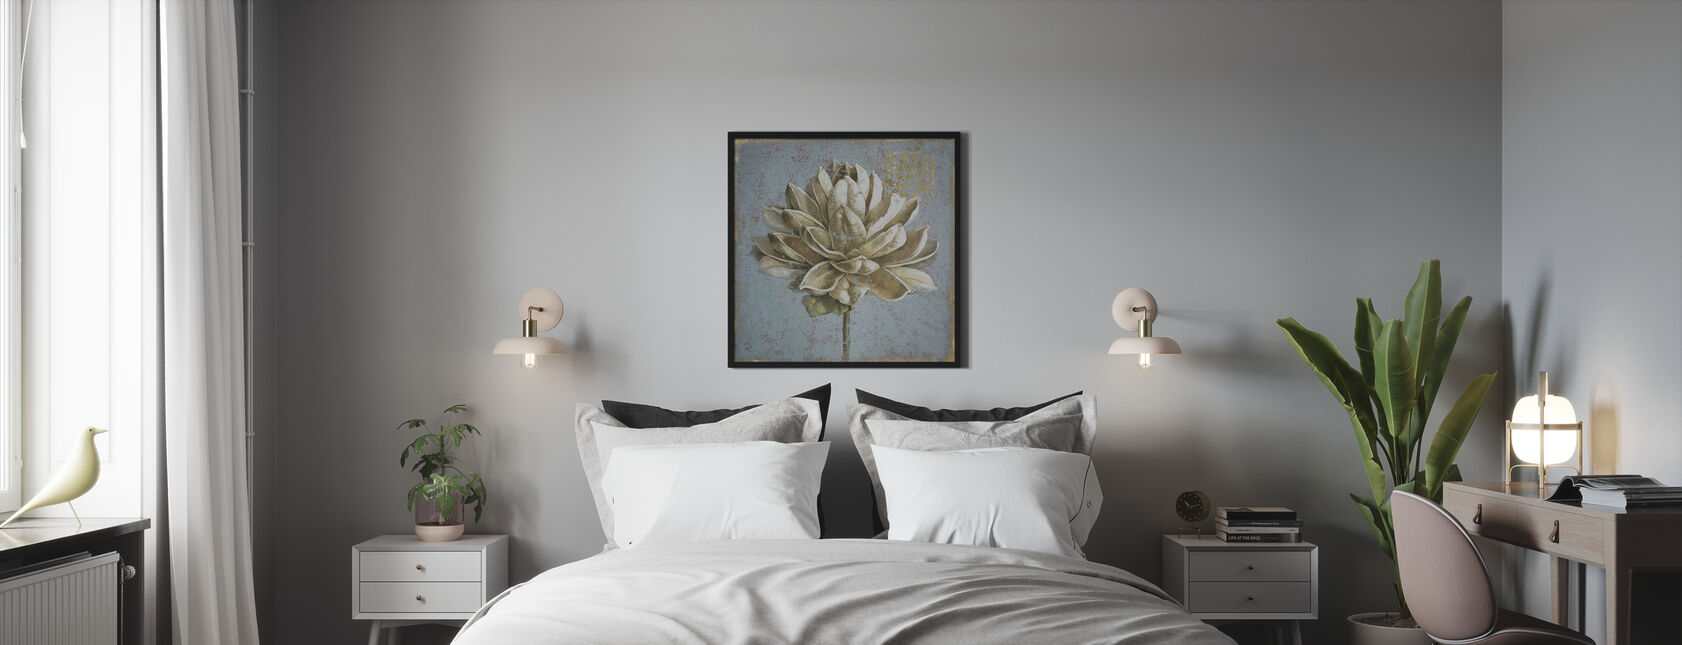 Seed Pod I - Framed print - Bedroom